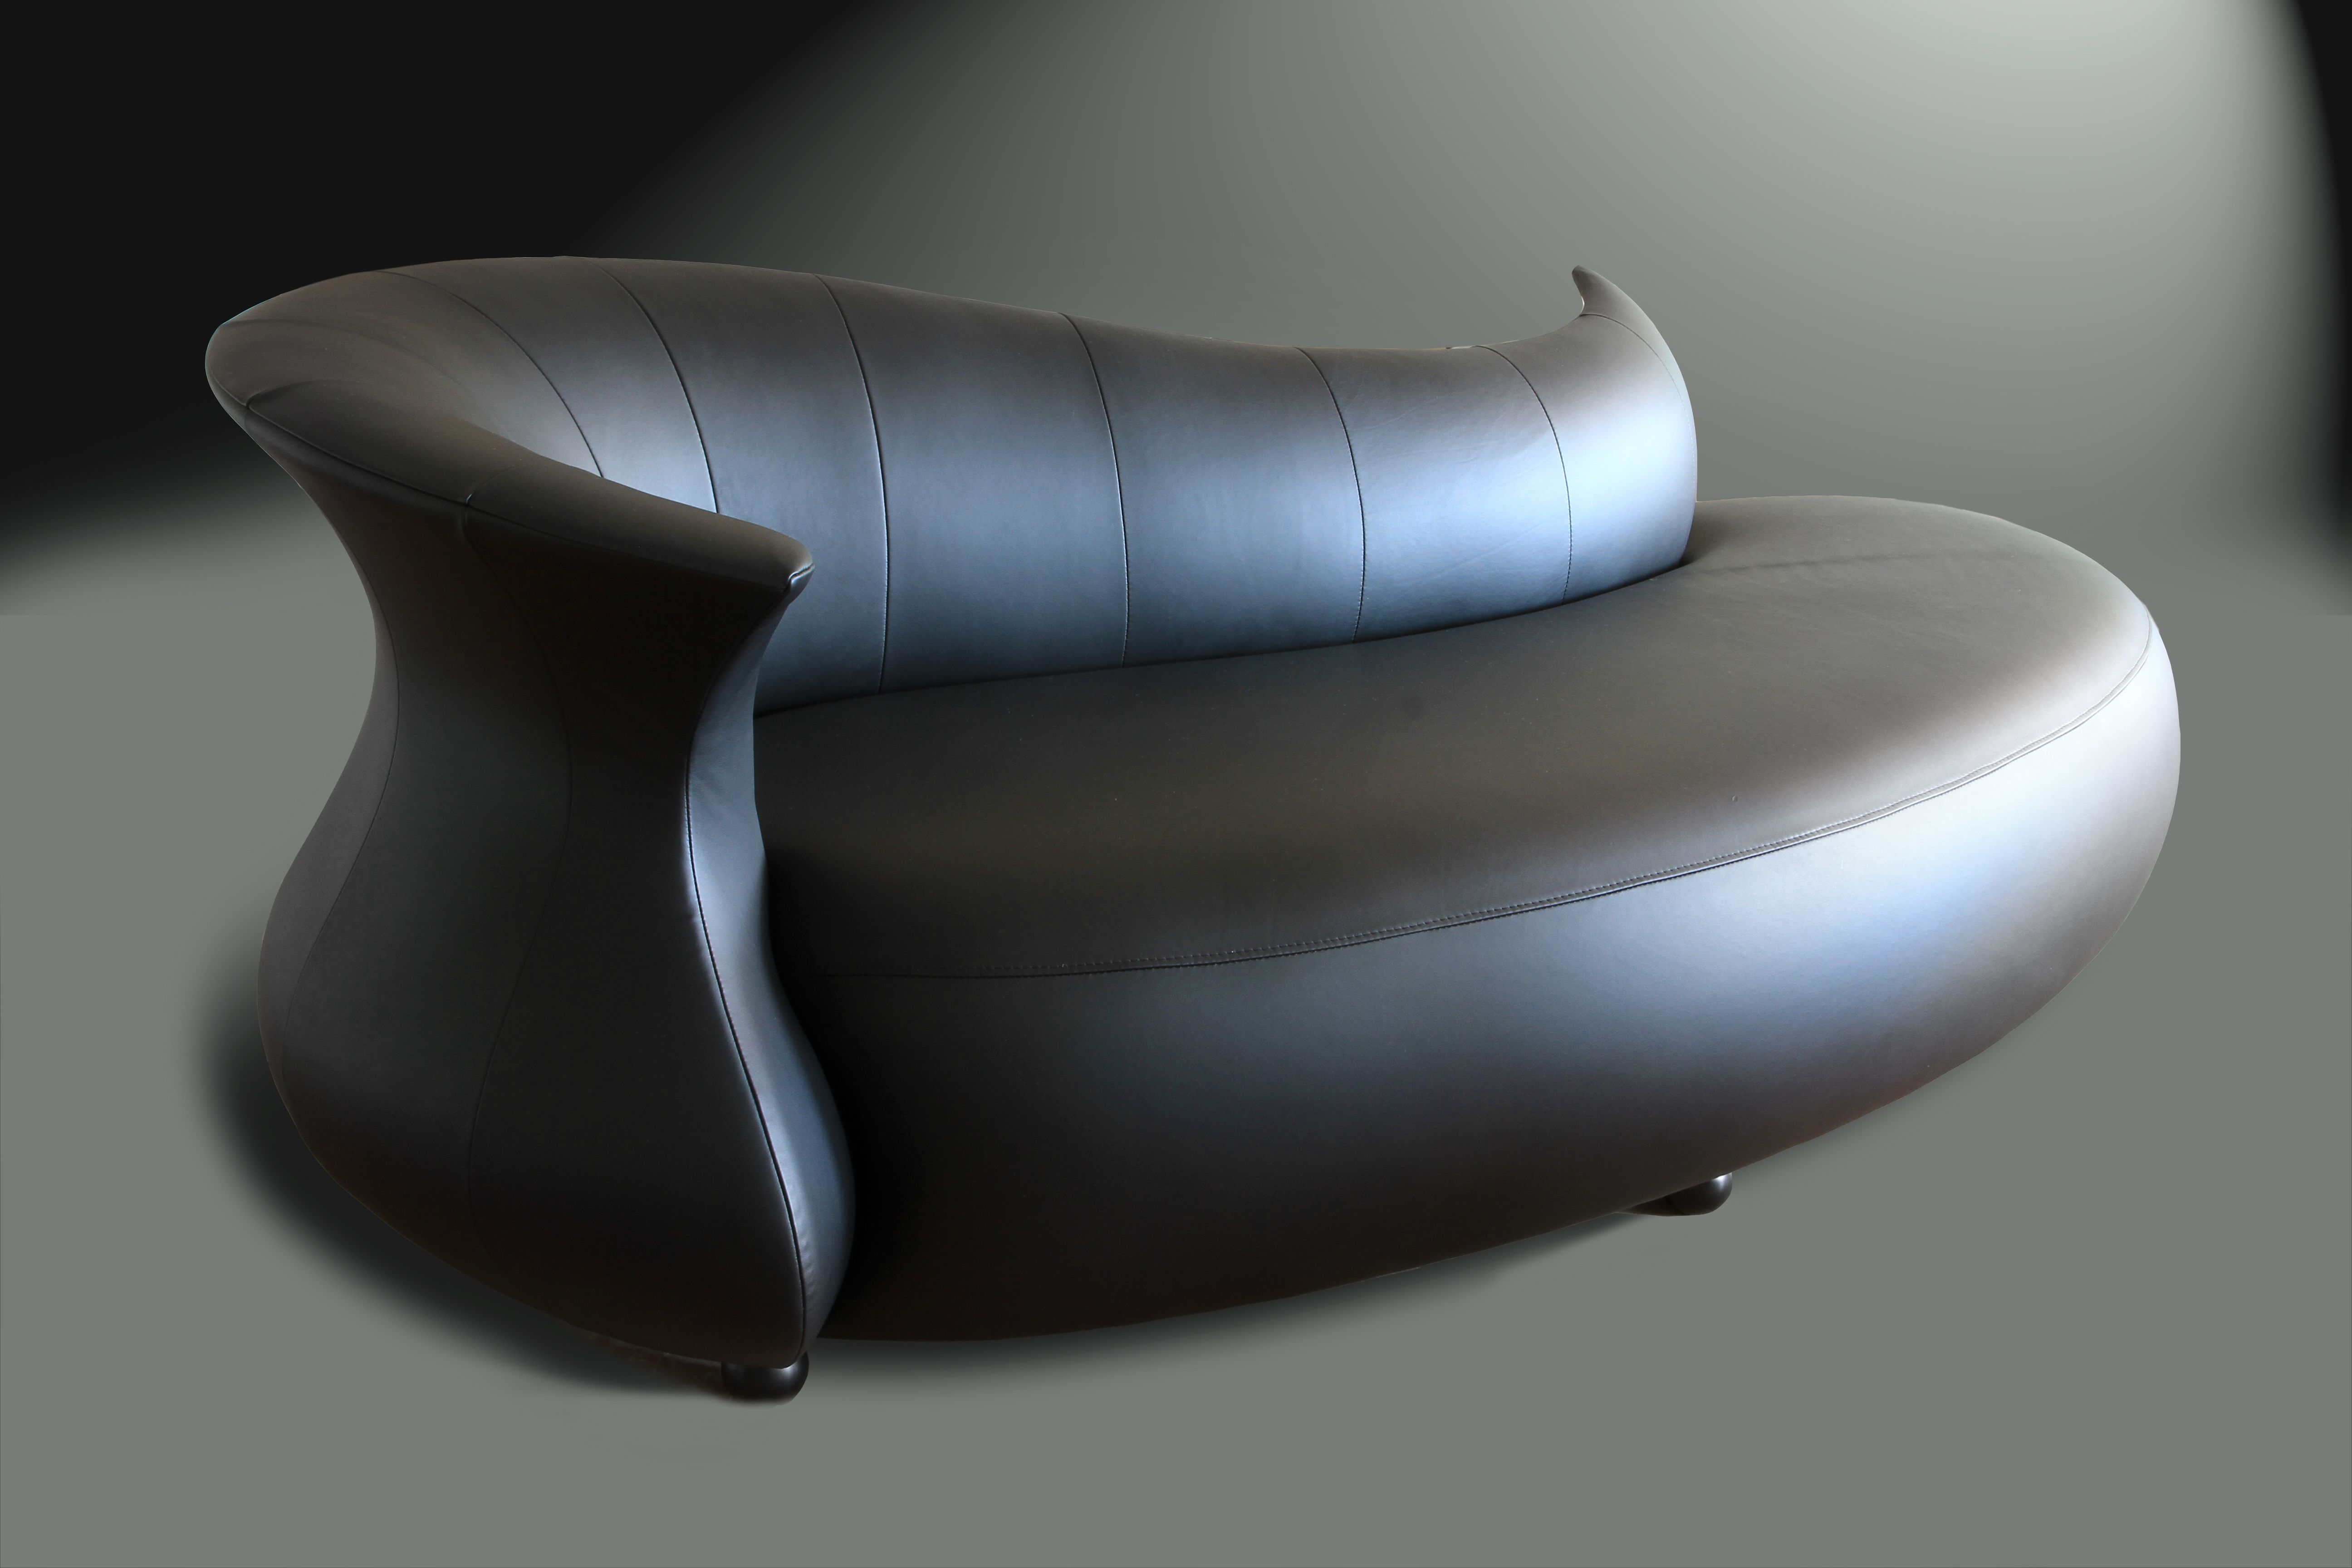 Uncategorized Unique Chaise Lounge divano designs furniture amphora modern chaise lounge sofa 9 classy dark leather coloring with unique design for inspiring indoor decors living room design